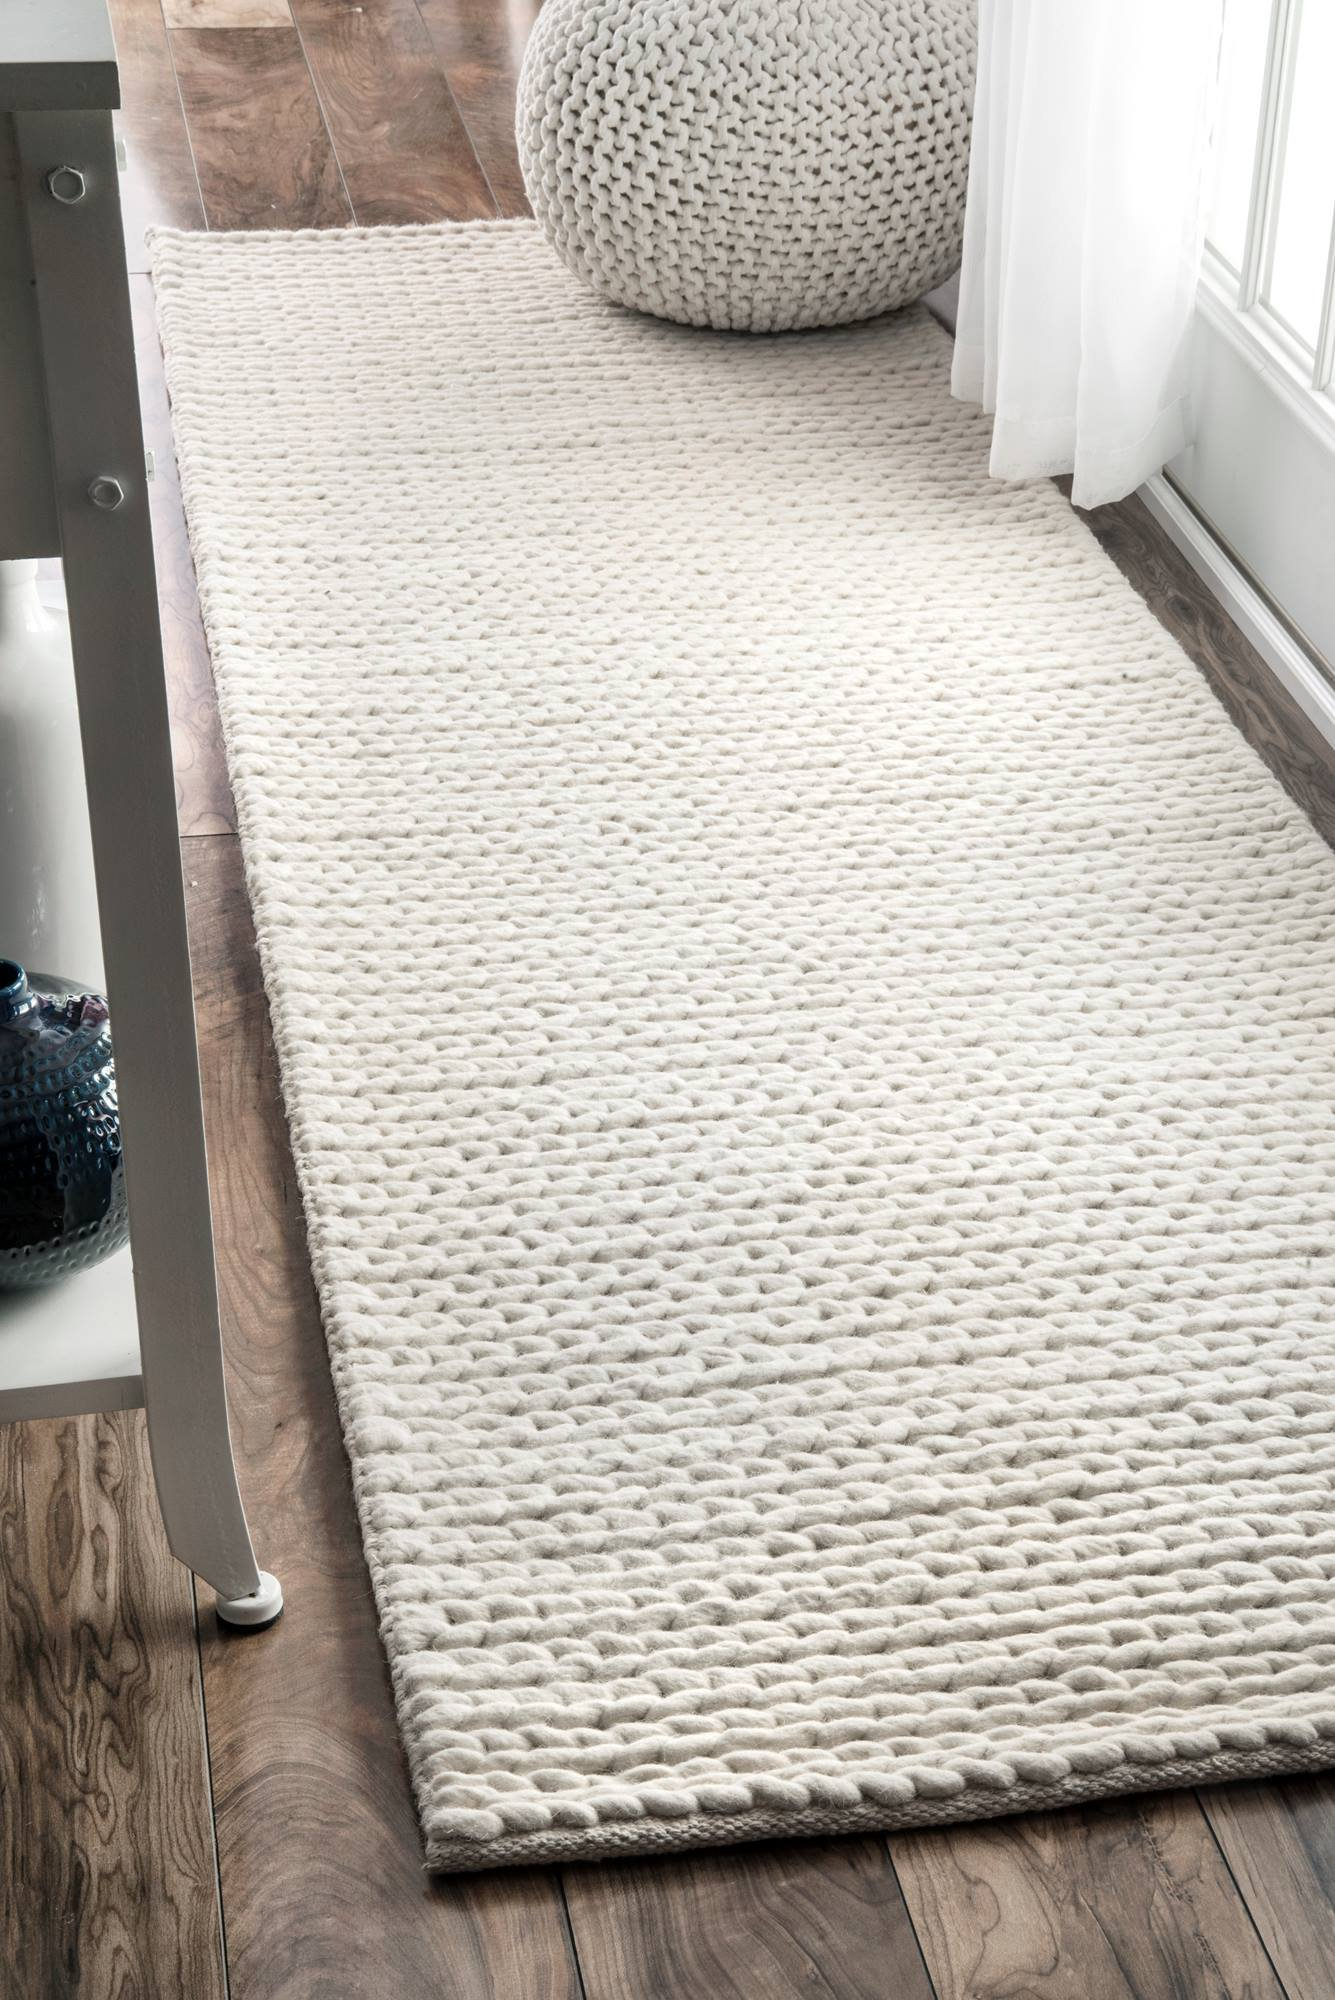 nuLOOM Contemporary Solid Braided Runner Area Rugs, 2' 6'' x 8', Off White